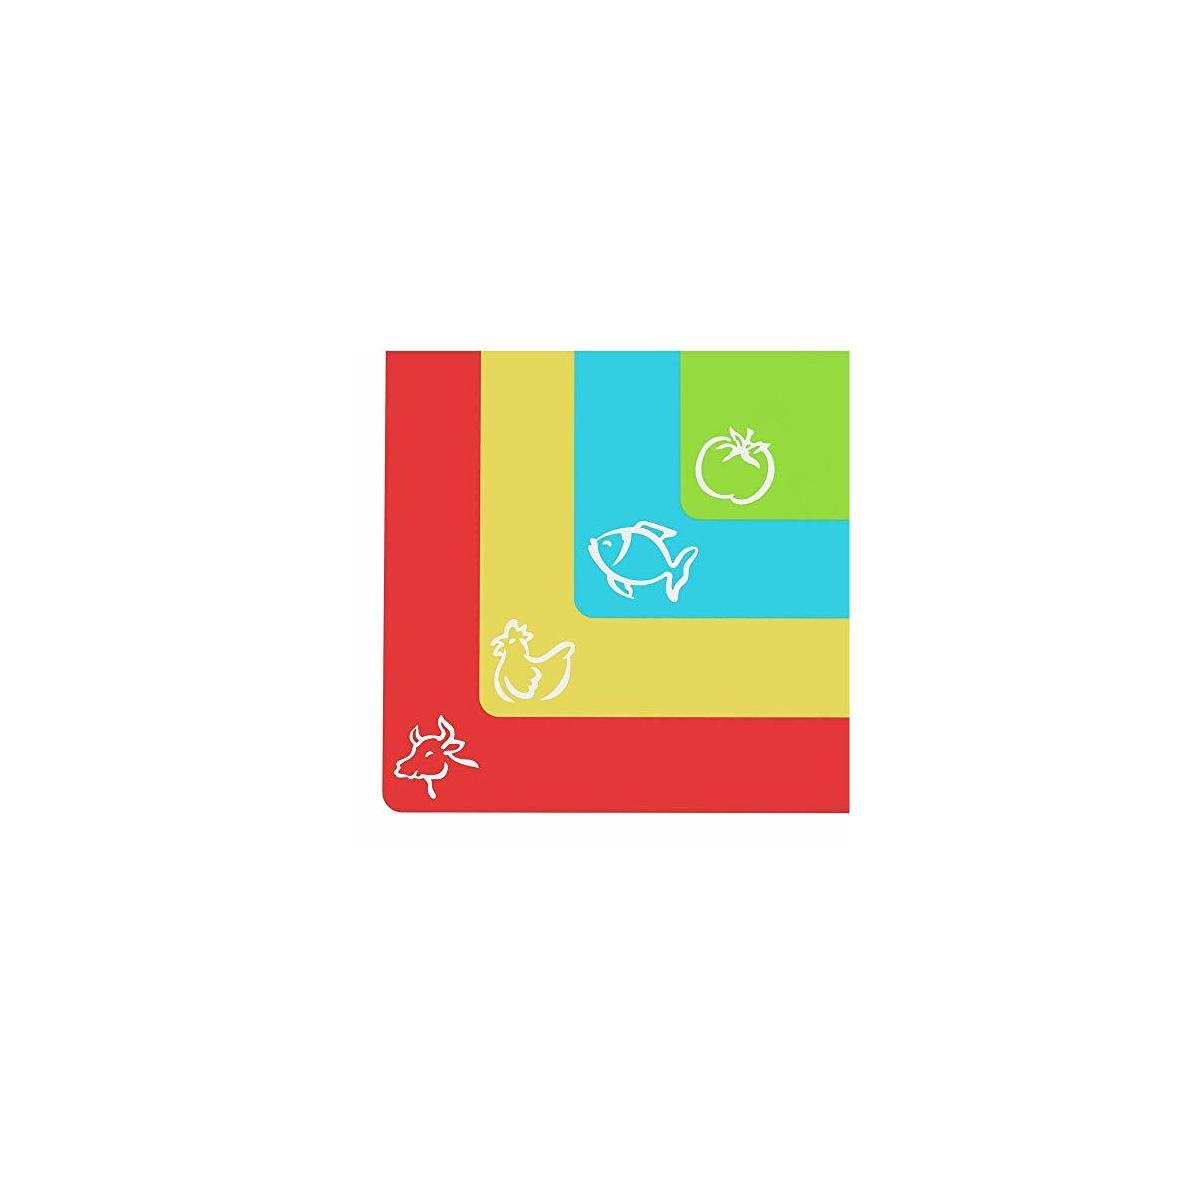 Cooler Kitchen Extra Thick Flexible Plastic Cutting Board Mats with Food Icons & EZ-Grip Waffle Back, (Set of 4)